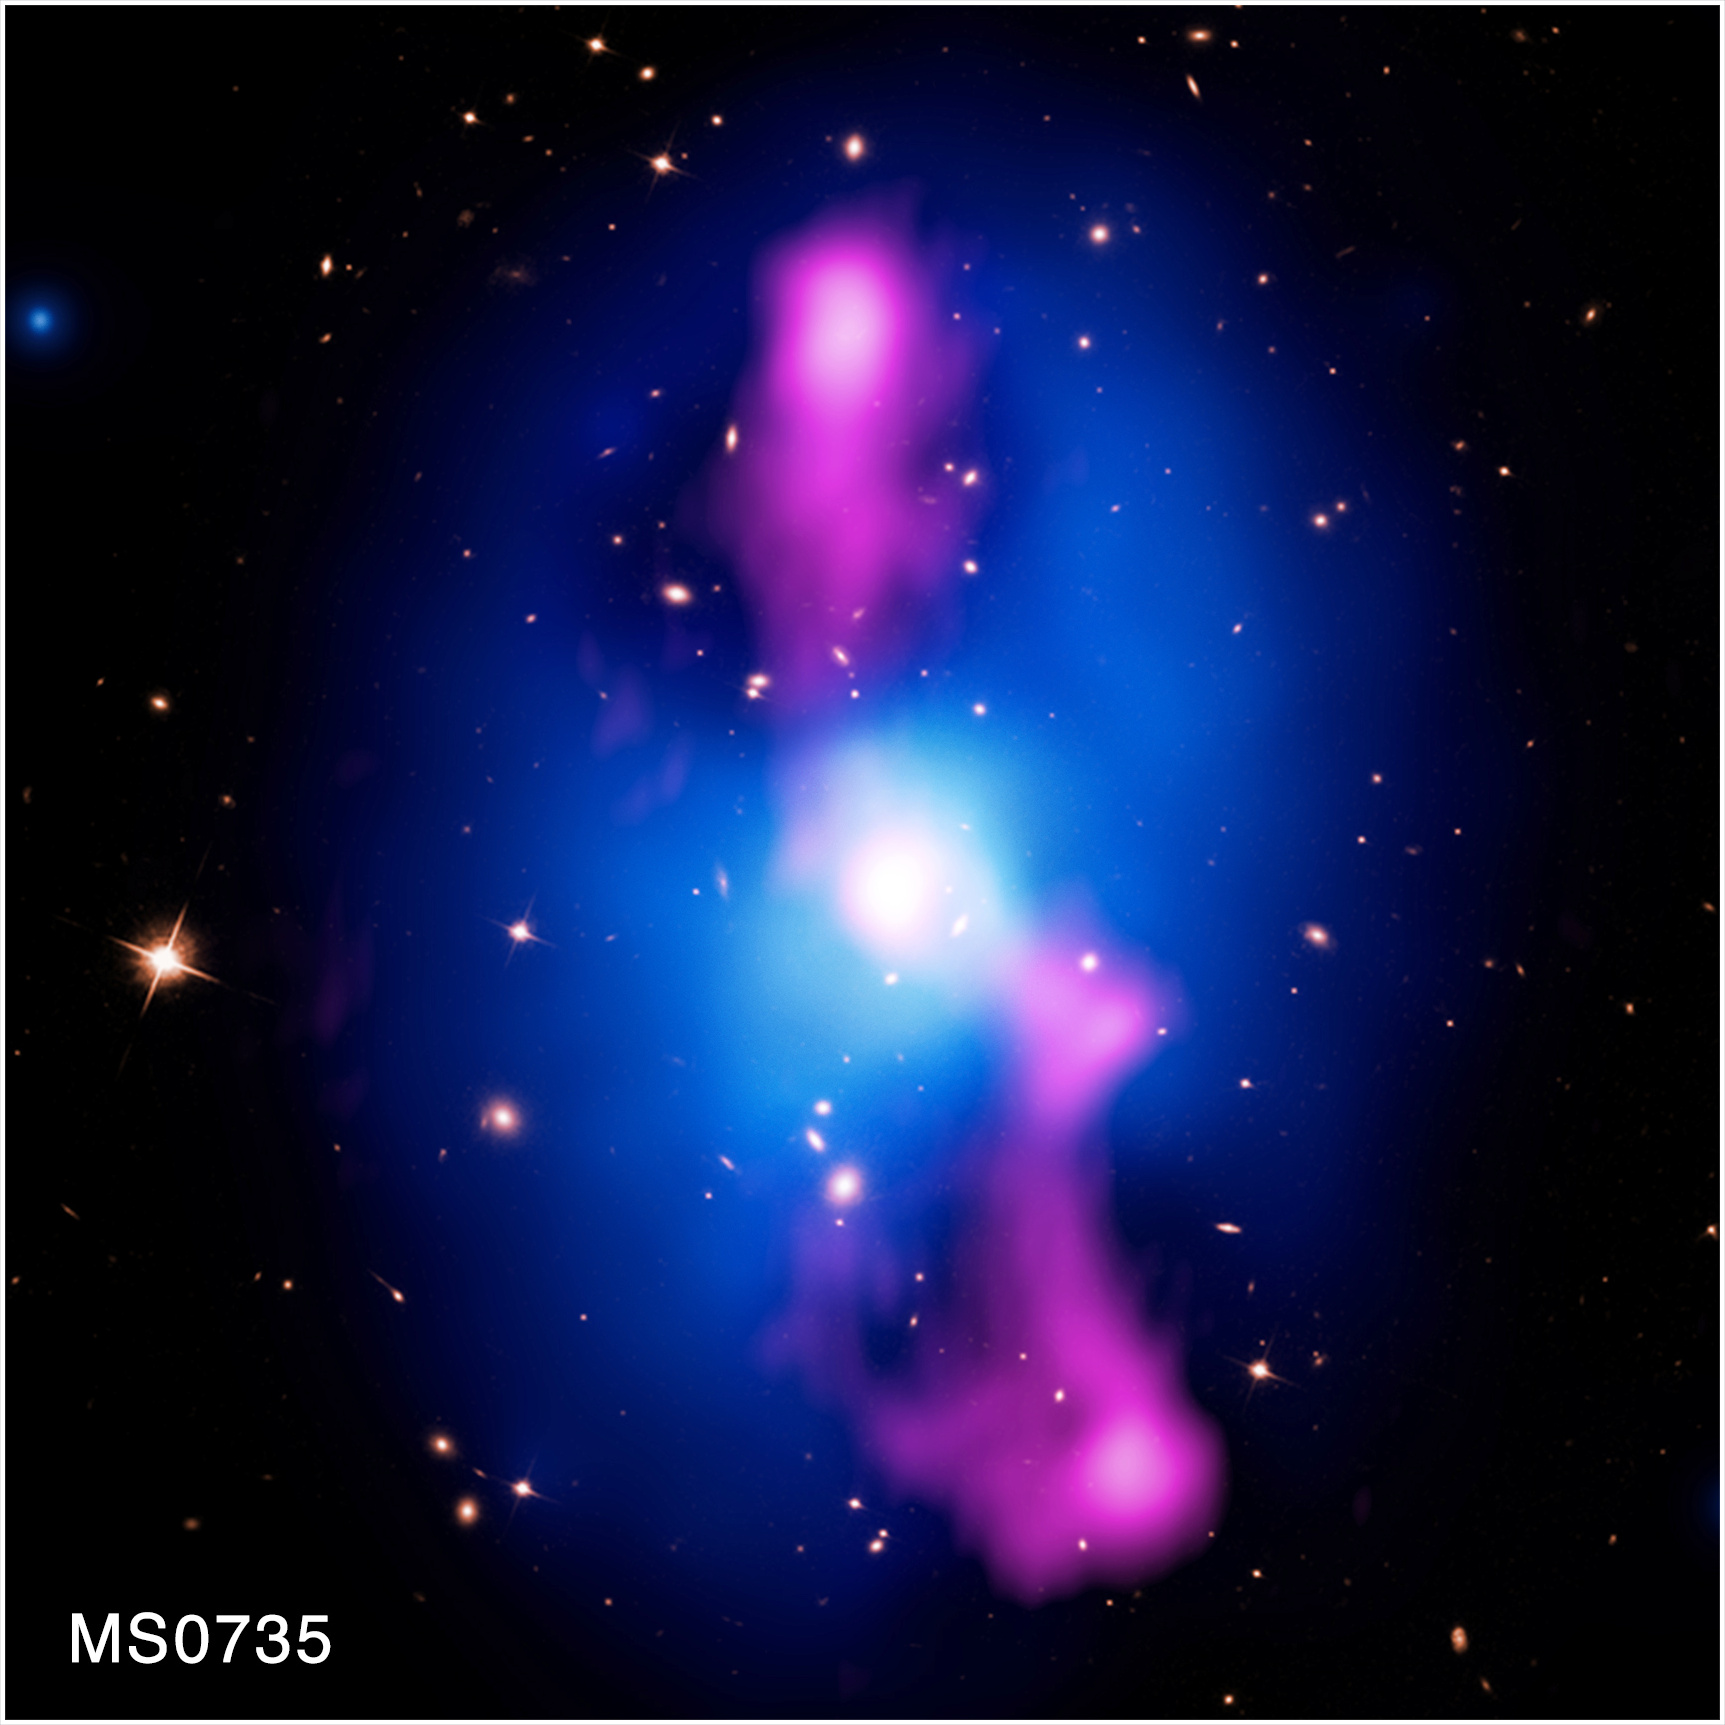 Image credit: Chandra X-ray Center / NASA'S Marshall Space Flight Center.